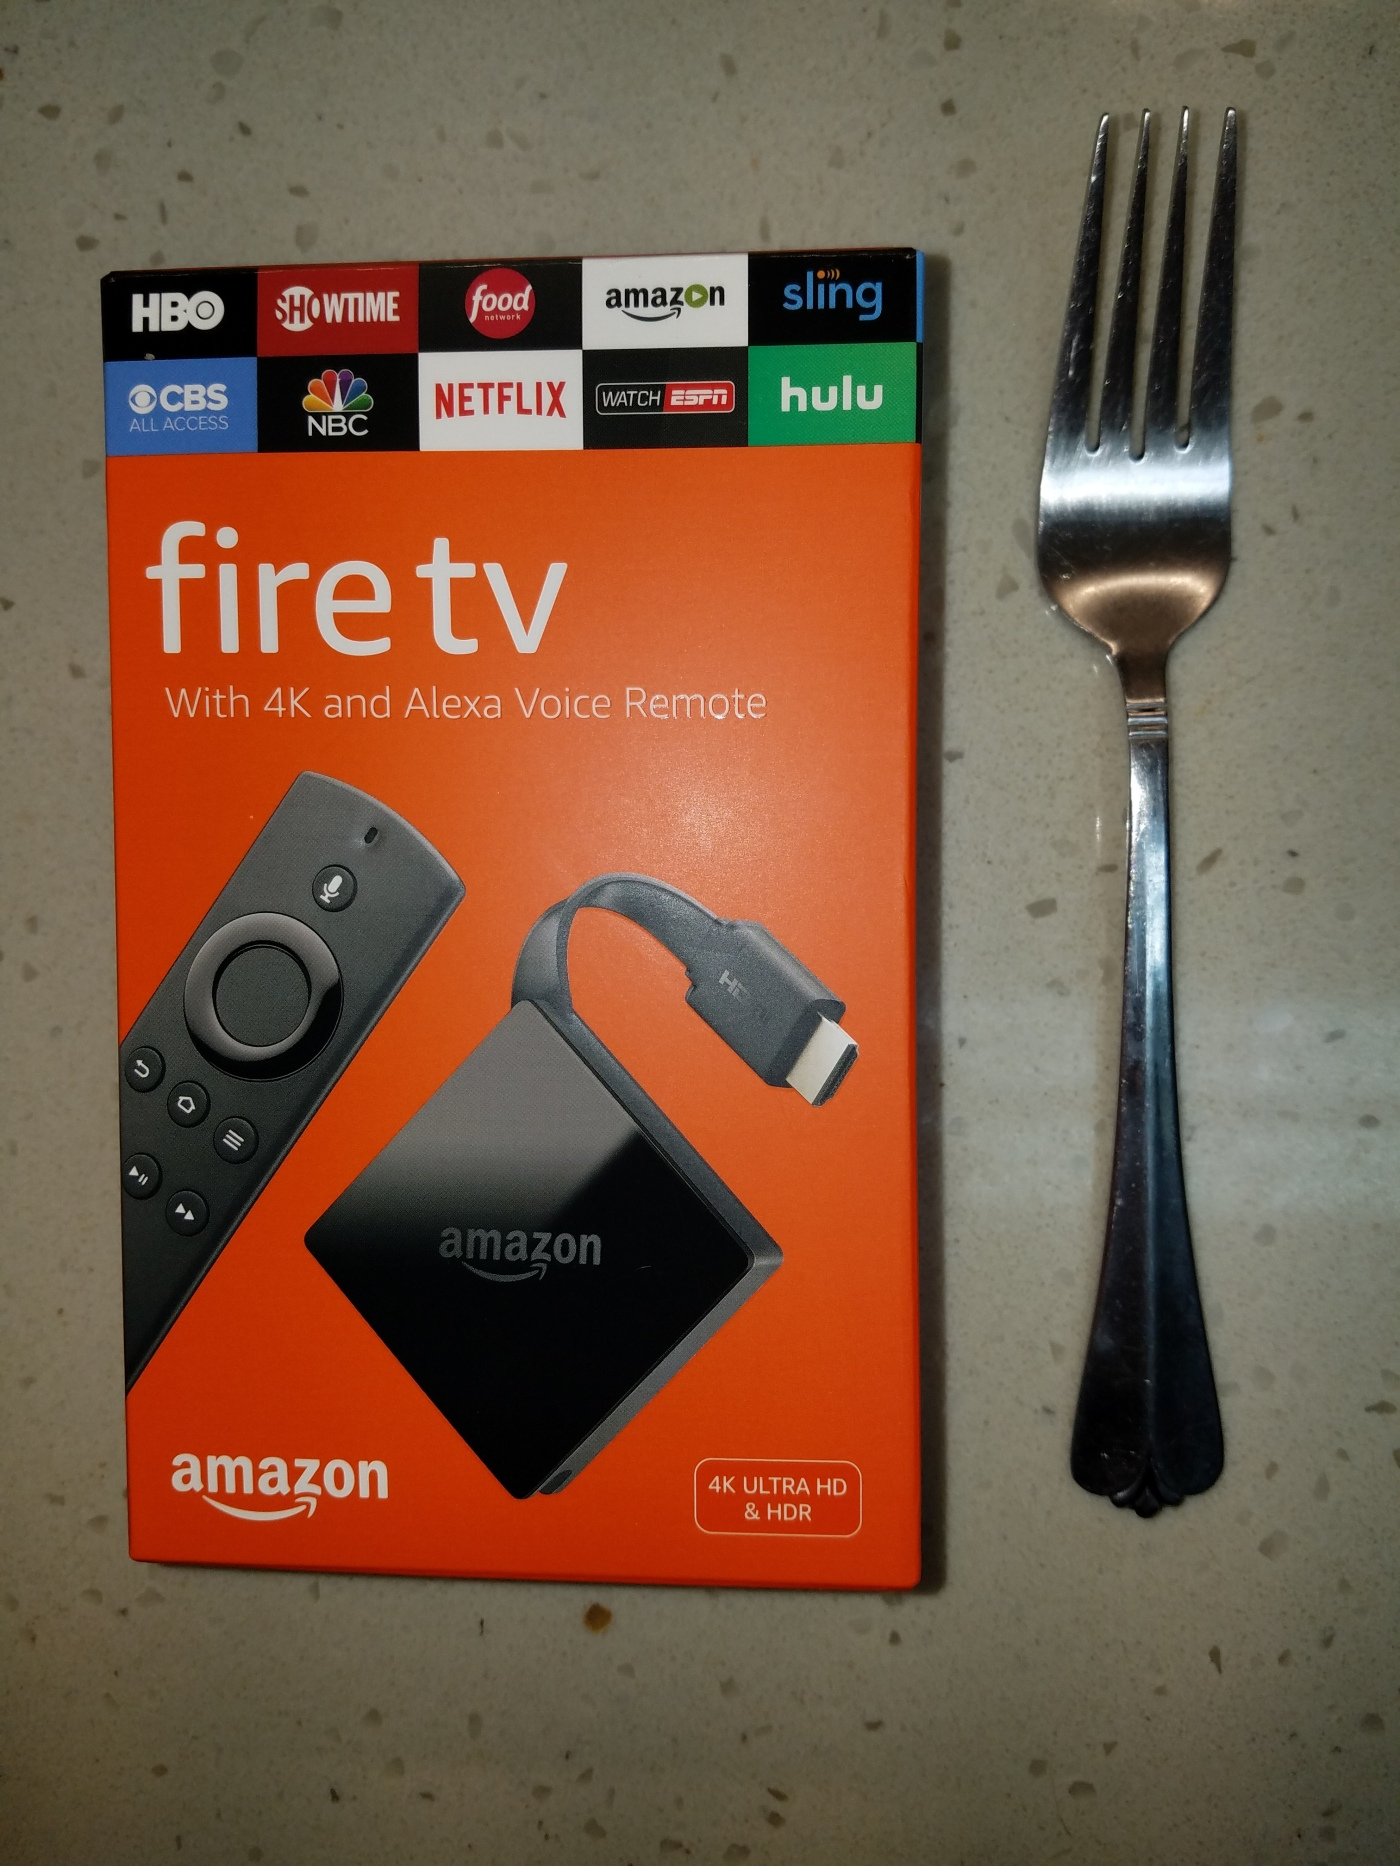 The new Fire TV removed one of my favorite features: Display